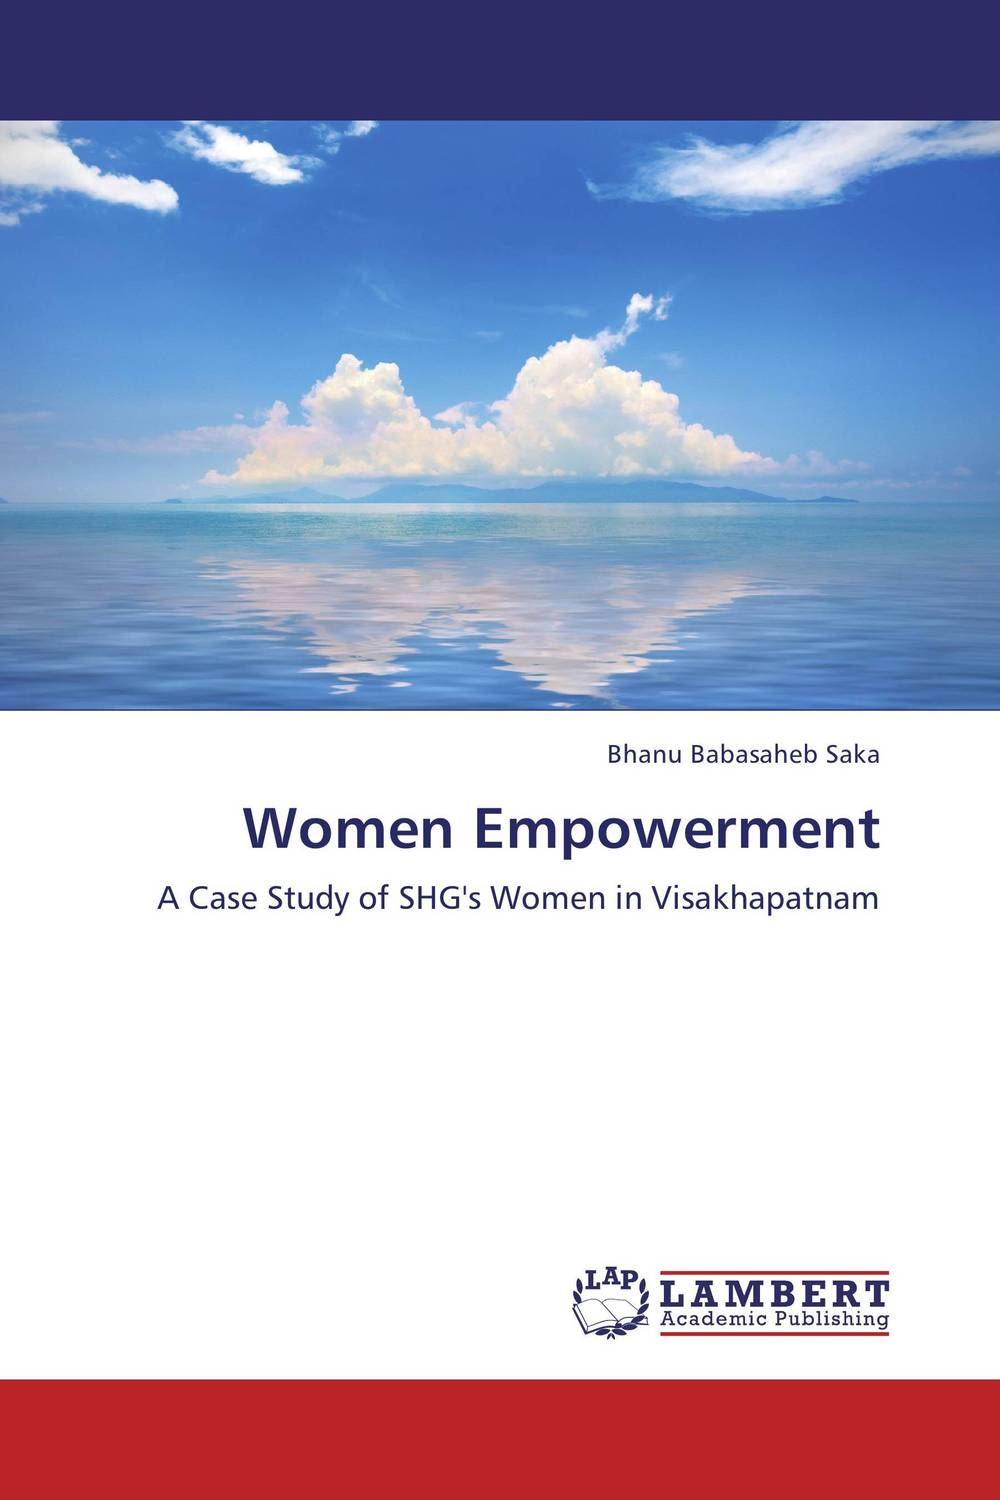 Women Empowerment economic empowerment of women and family structures